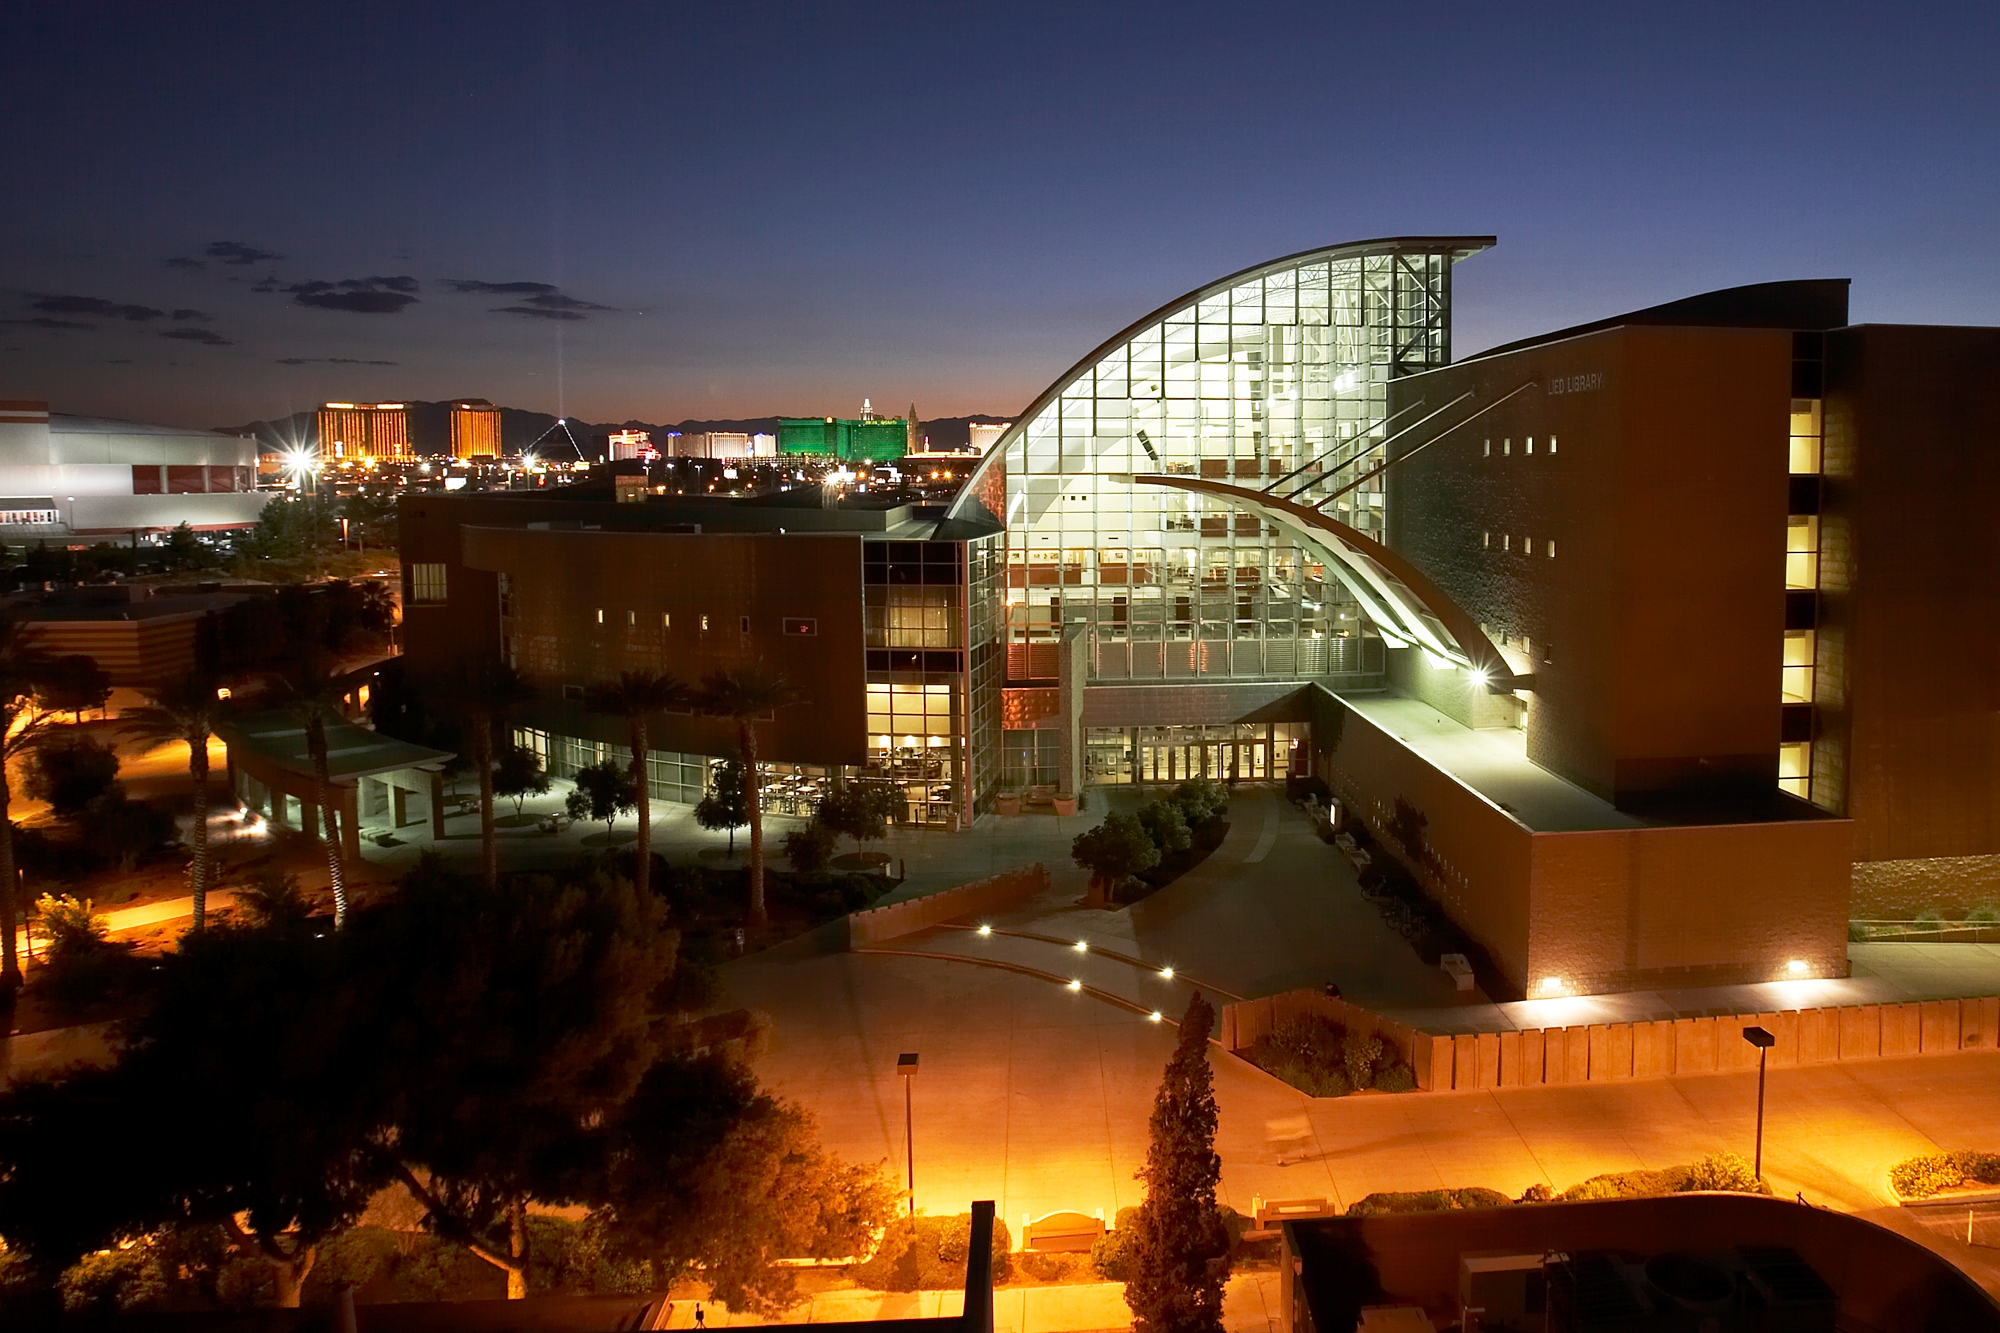 Night time shot of Lied Library at the University of Nevada, Las Vegas, with the Las Vegas Strip in background.